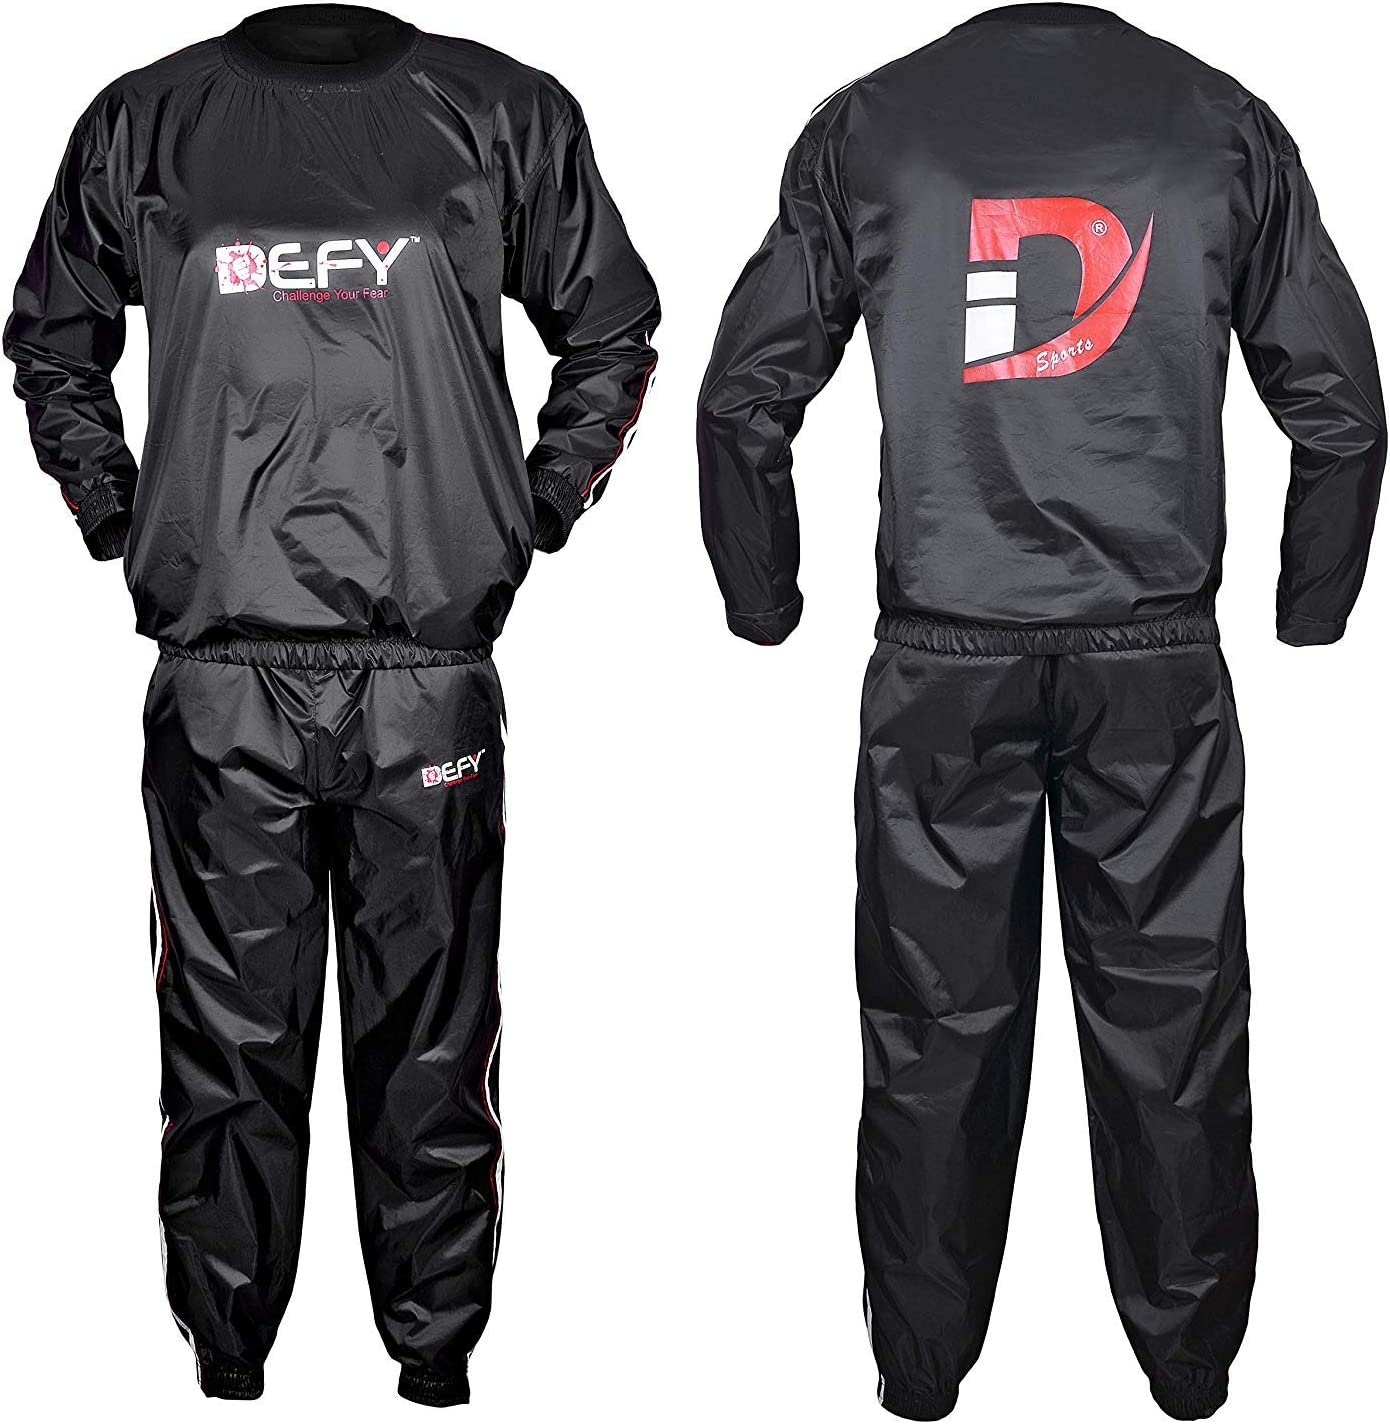 DEFY Heavy Duty Sauna Sweat Suit Exercise Training Gym Suit Fitness, Weight Loss, Anti-Rip New